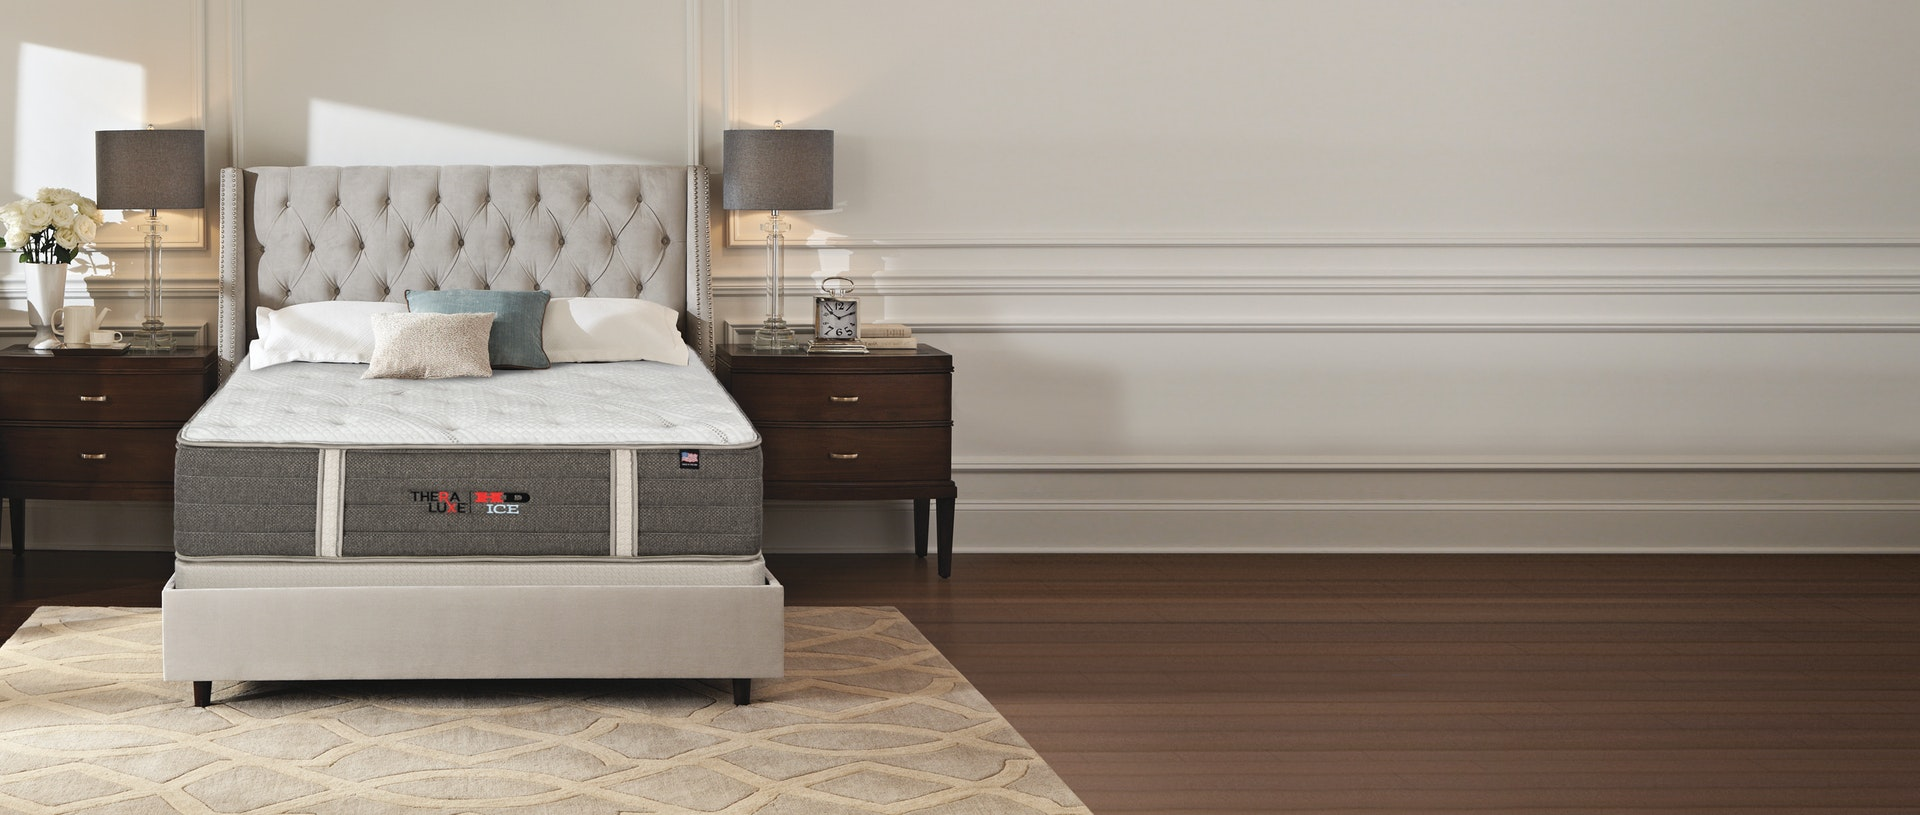 TheraLuxe HD ICE Mattress in a bedroom setting